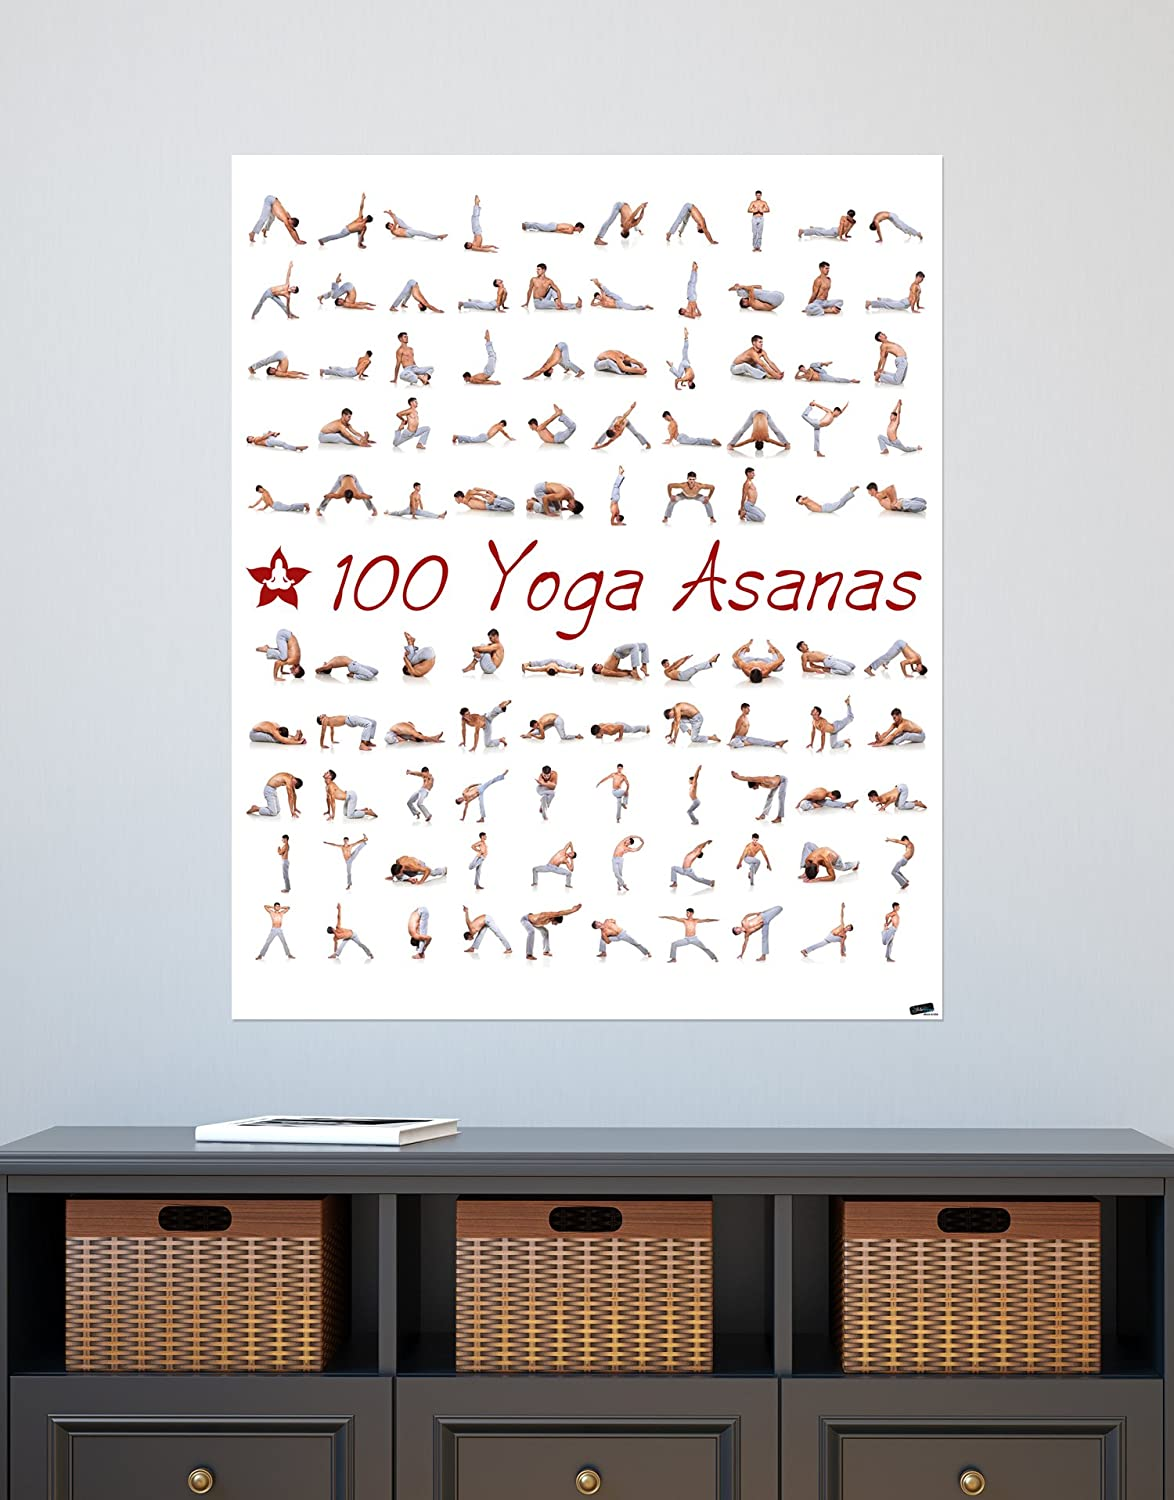 Amazon.com: Stickerbrand 100 Yoga Poses Asanas Poster ...